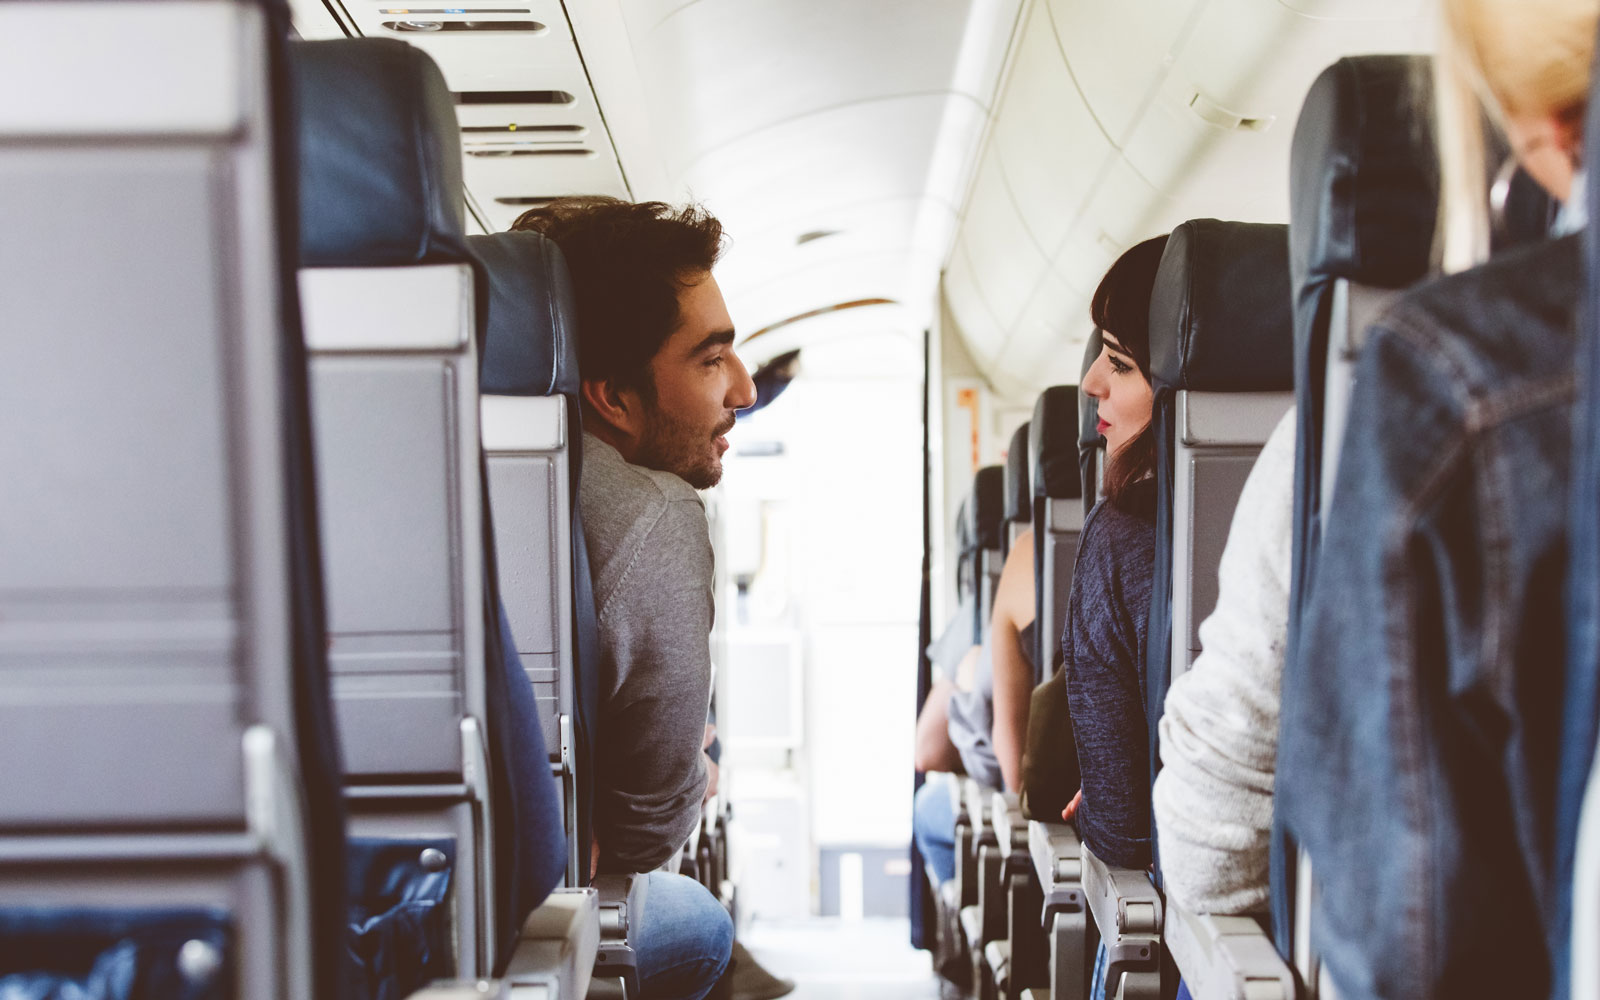 A new survey shows flights can be one of the ways to meet your potential partner.